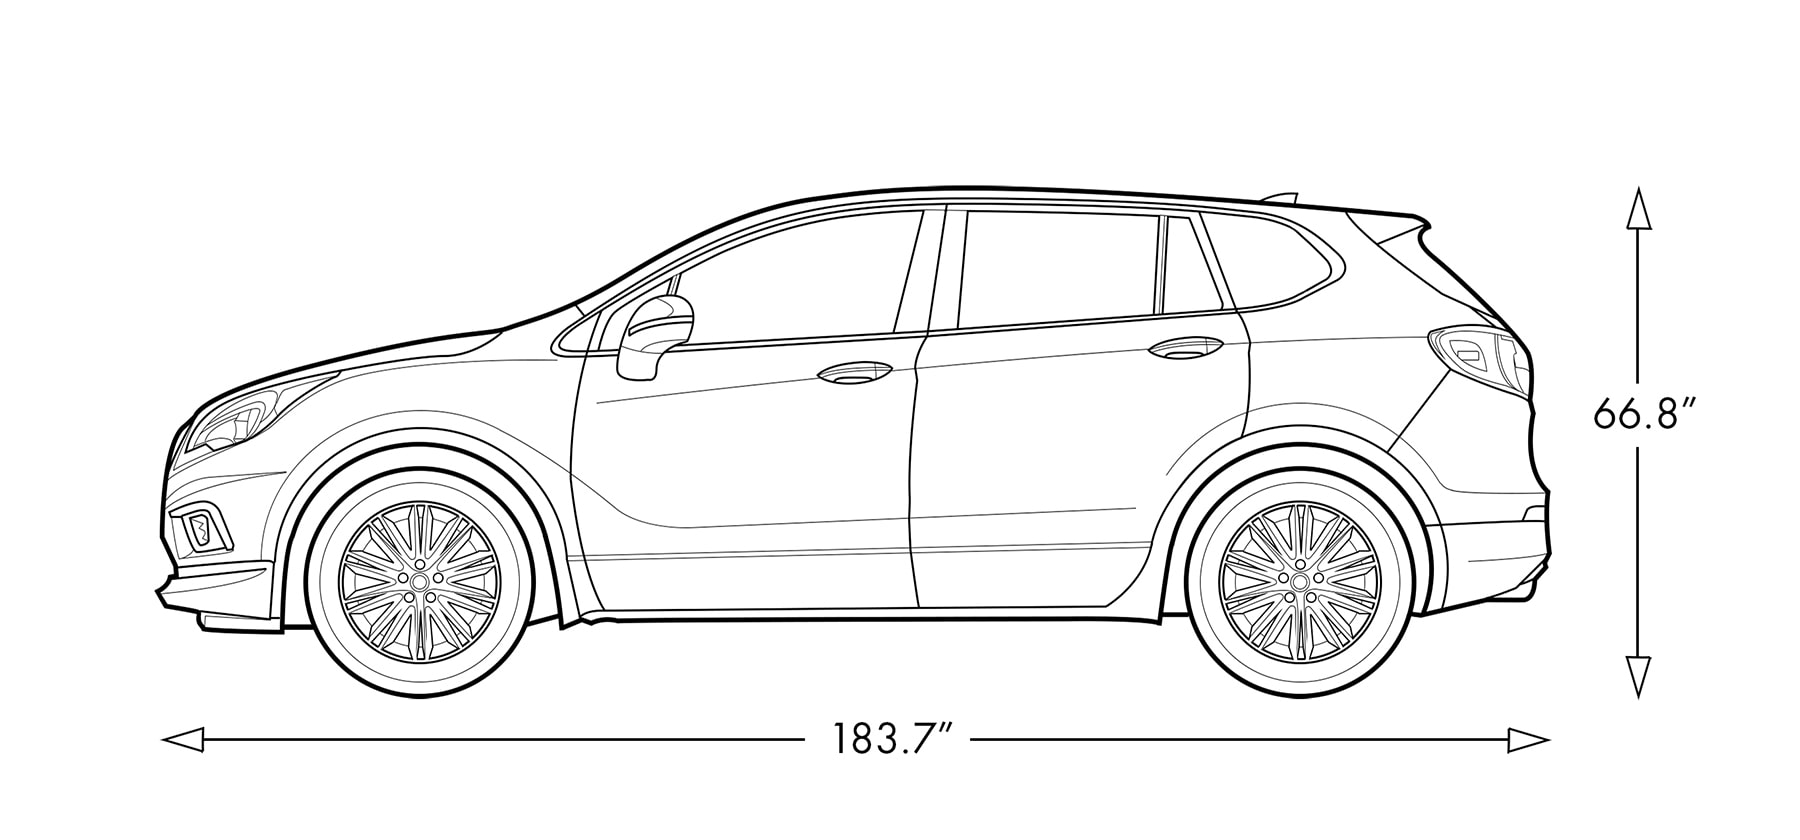 US20050052080 moreover Cab car taxi transport icon likewise M1090 as well Cartoon Car With A Man Driver Contours On White Vector Vector 3068344 likewise Stock Photos Coloring Page Vehicle Illustration Children Beautiful Image36751813. on car engine drawing